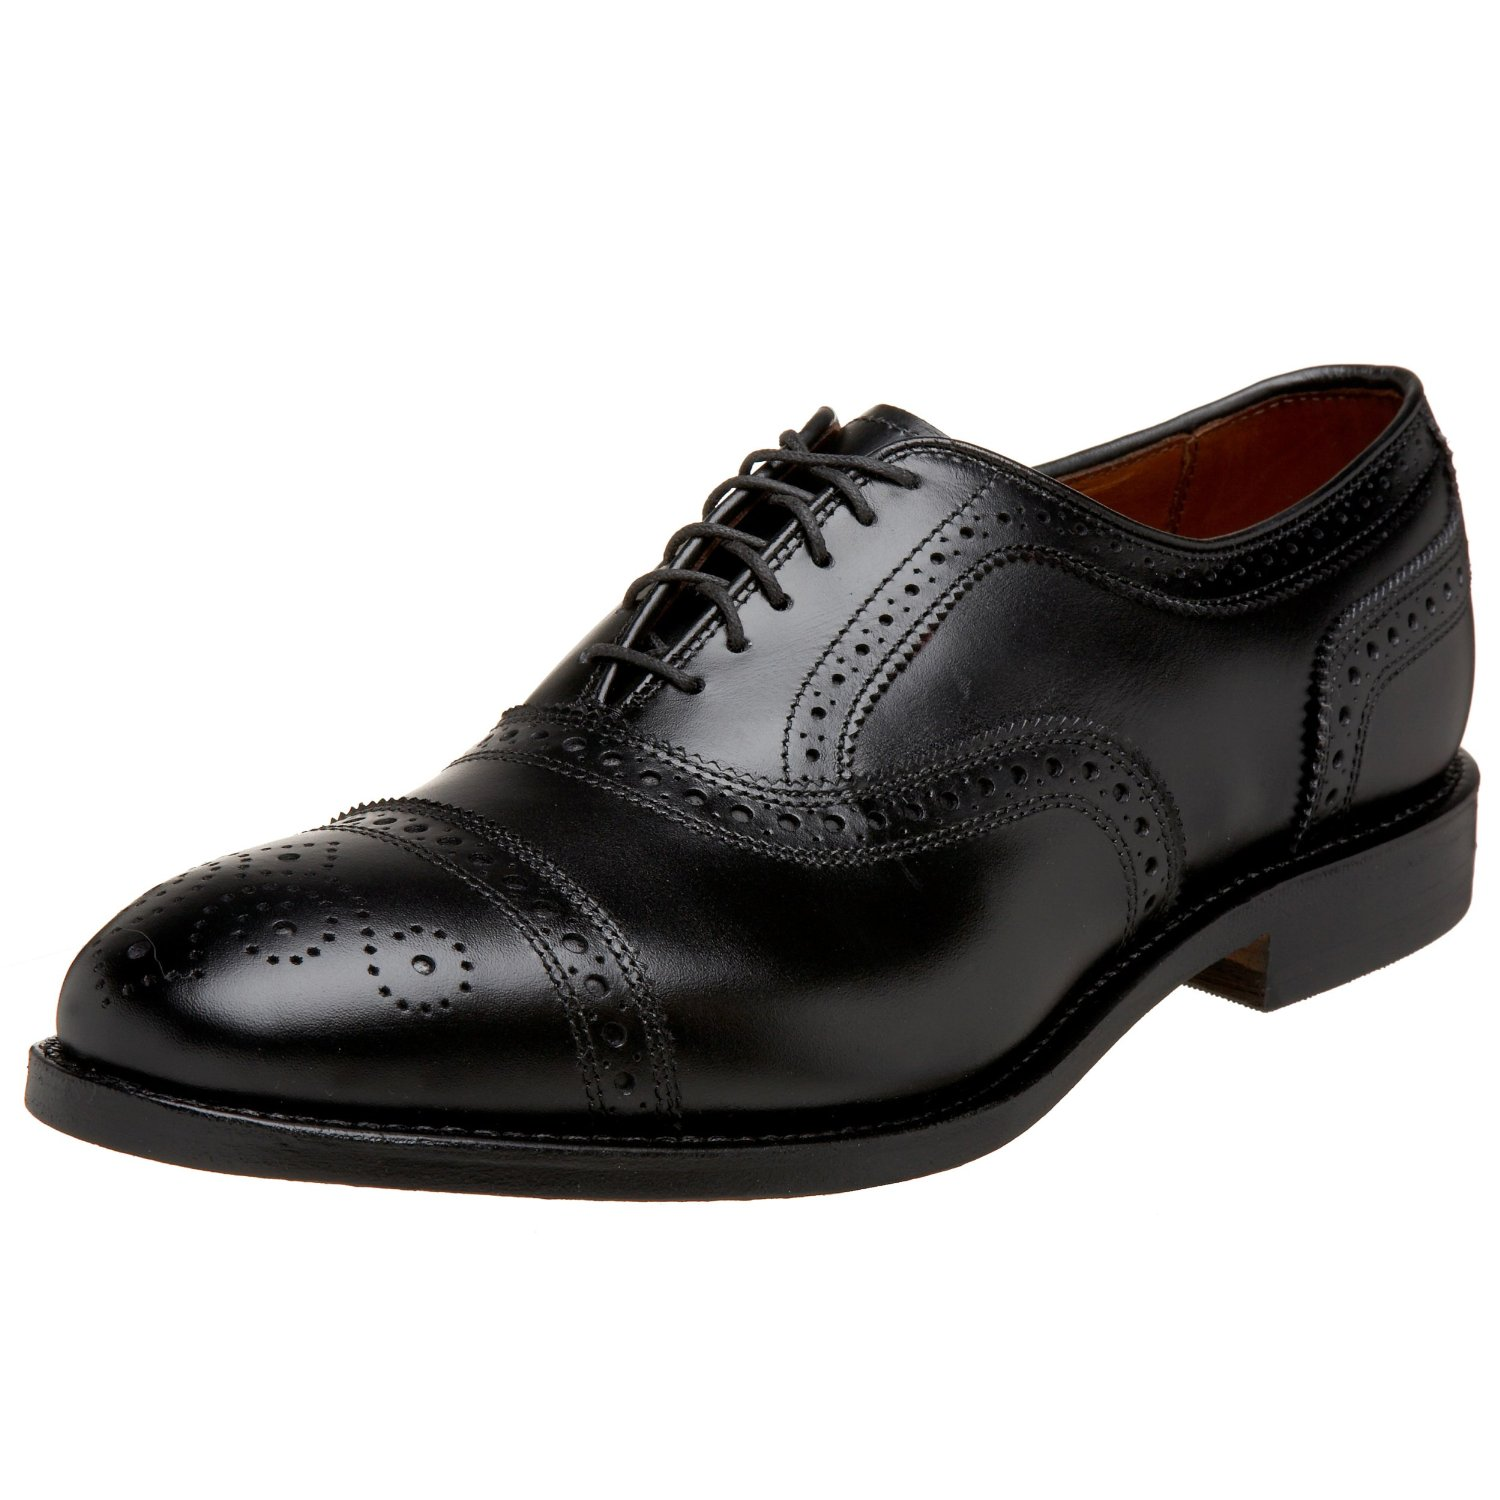 Mens Perforated Cap Toe Shoes